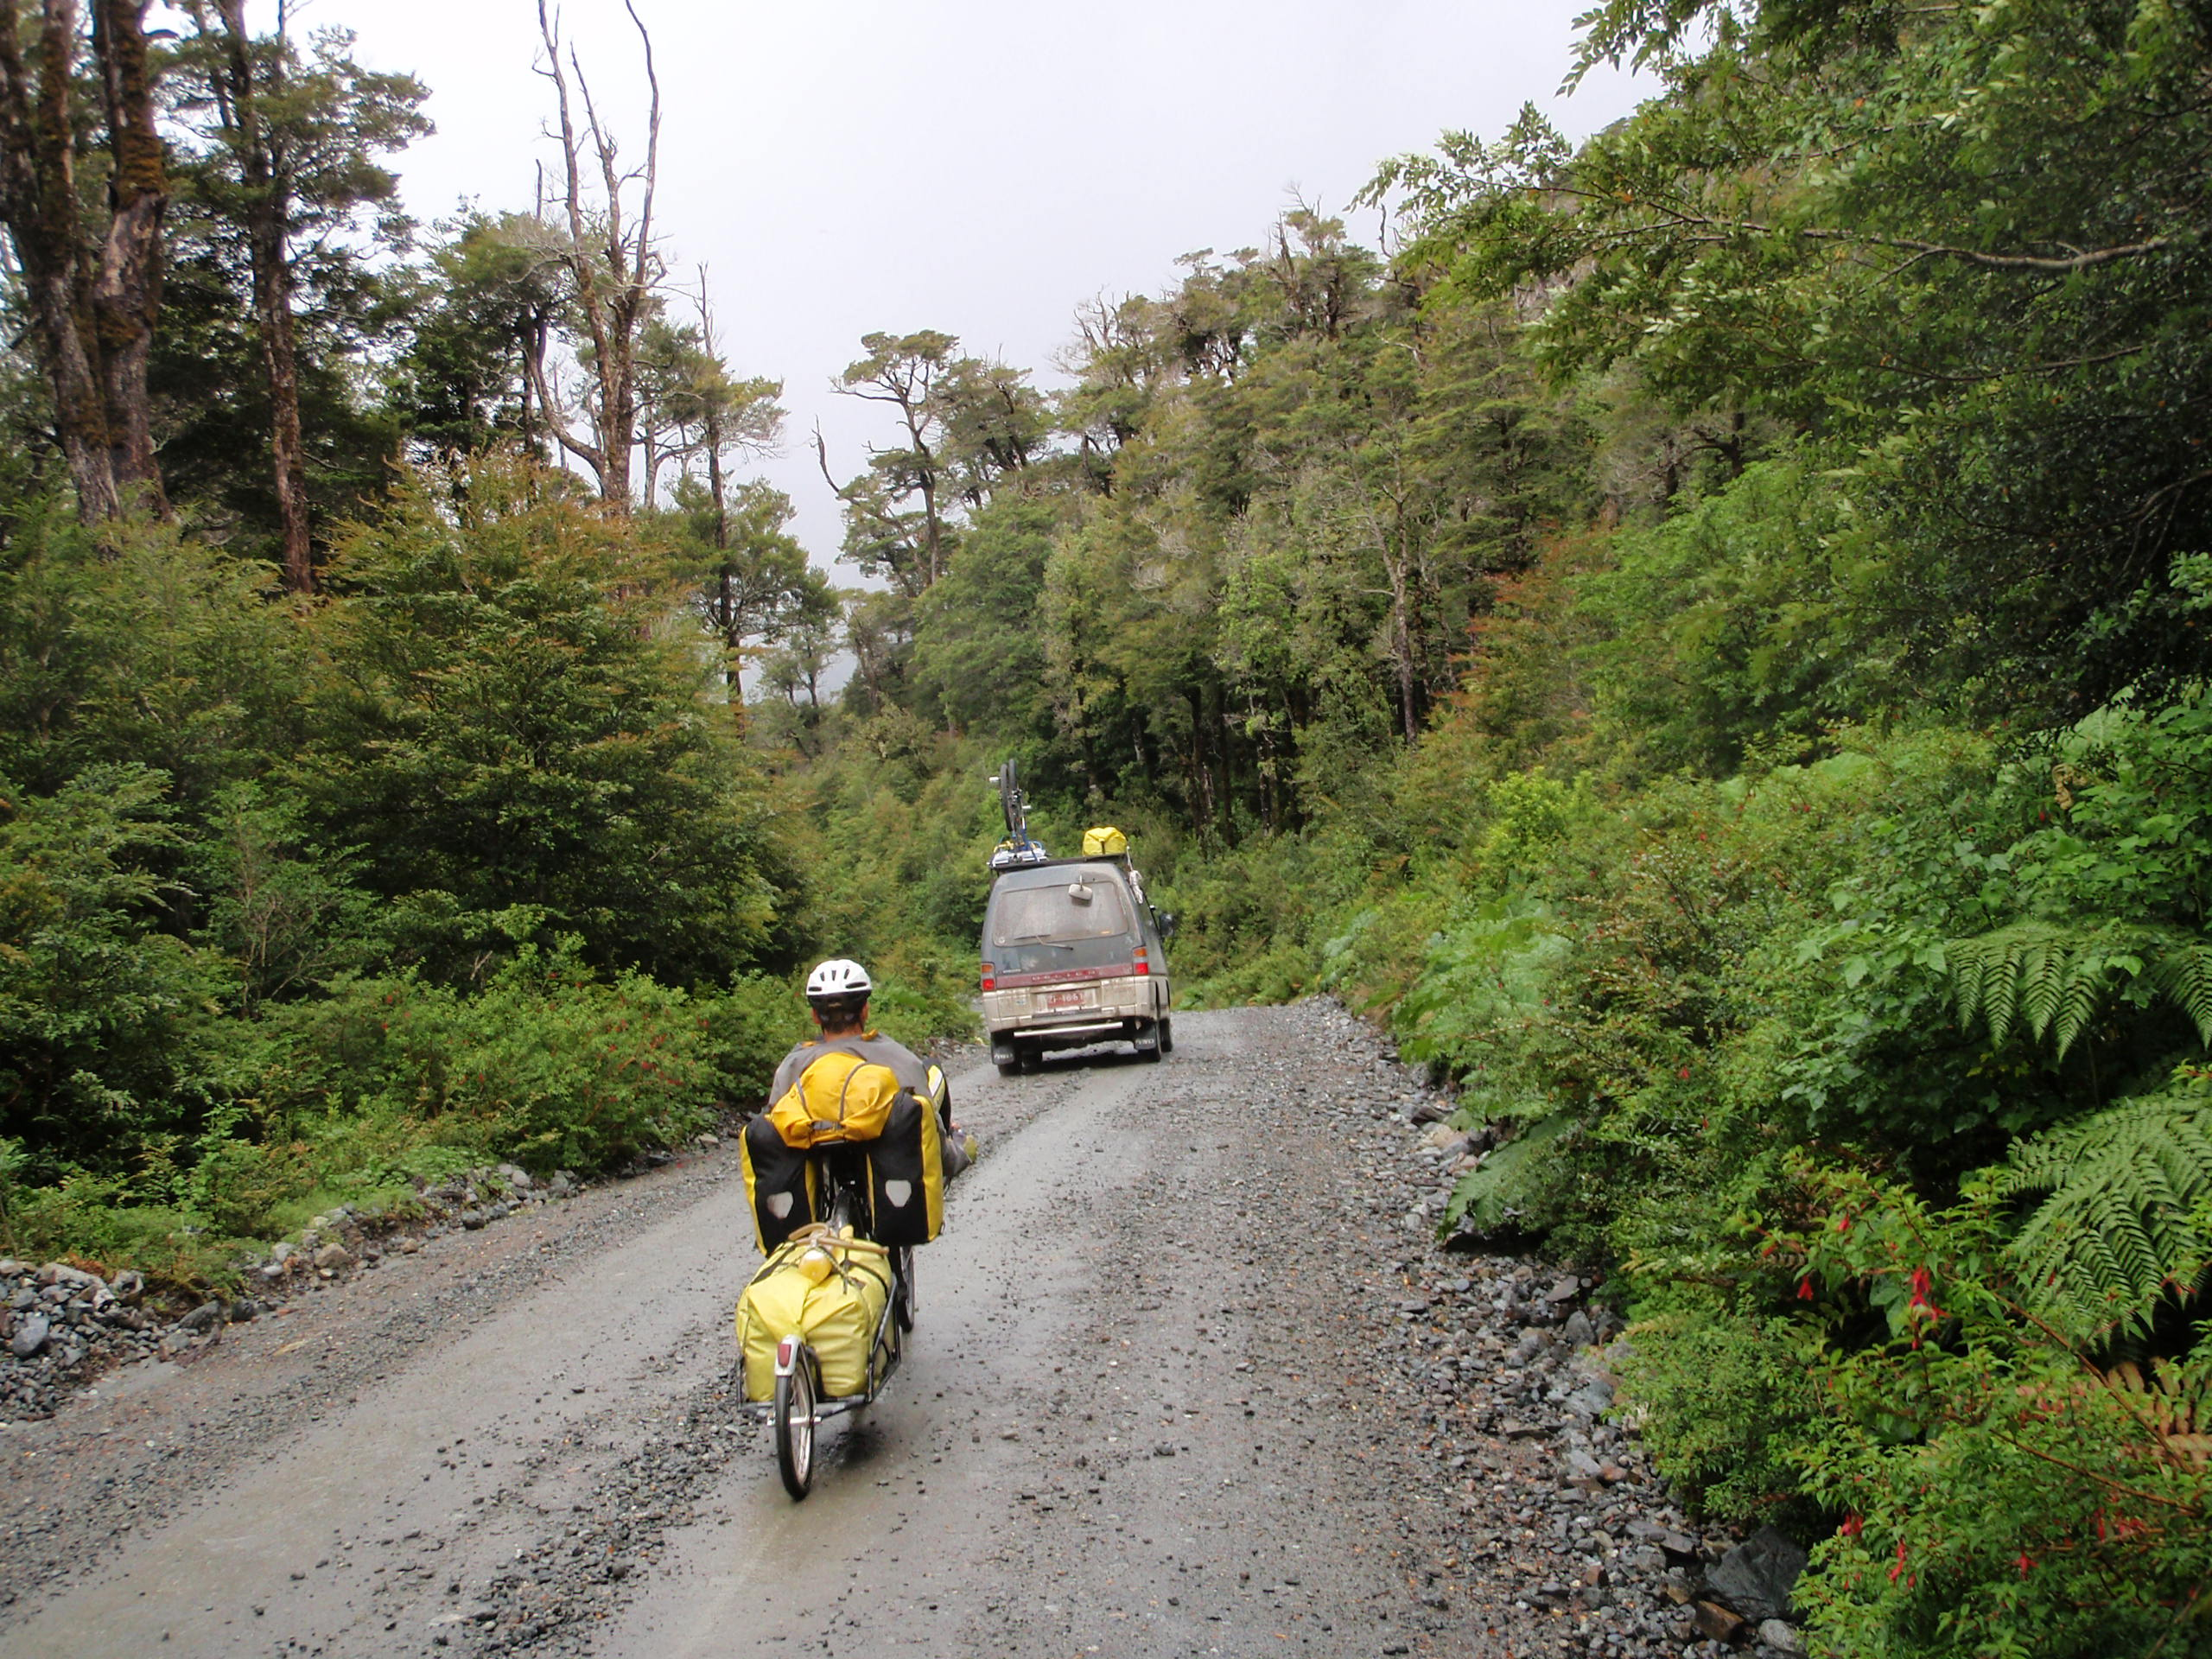 Riding on the Carreterra Austral